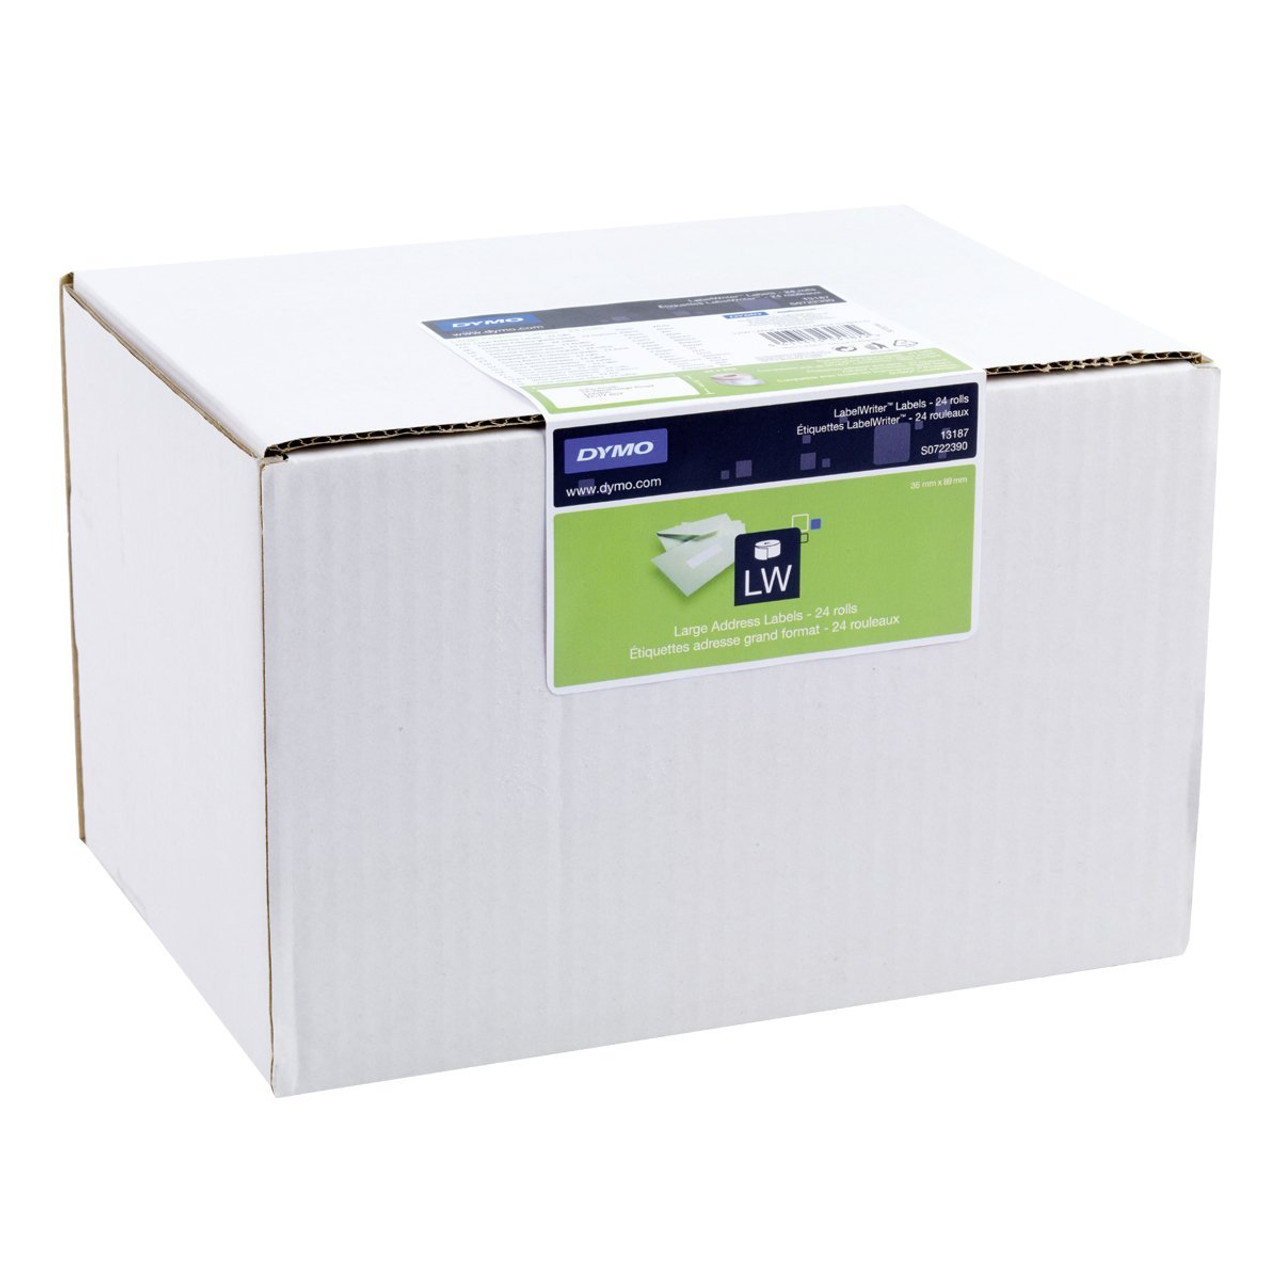 Dymo Bulk Labelwriter LW White Permanent Large Address Labels 36 X 89MM (Box Of 24 SD99012 Rolls) SD0722390